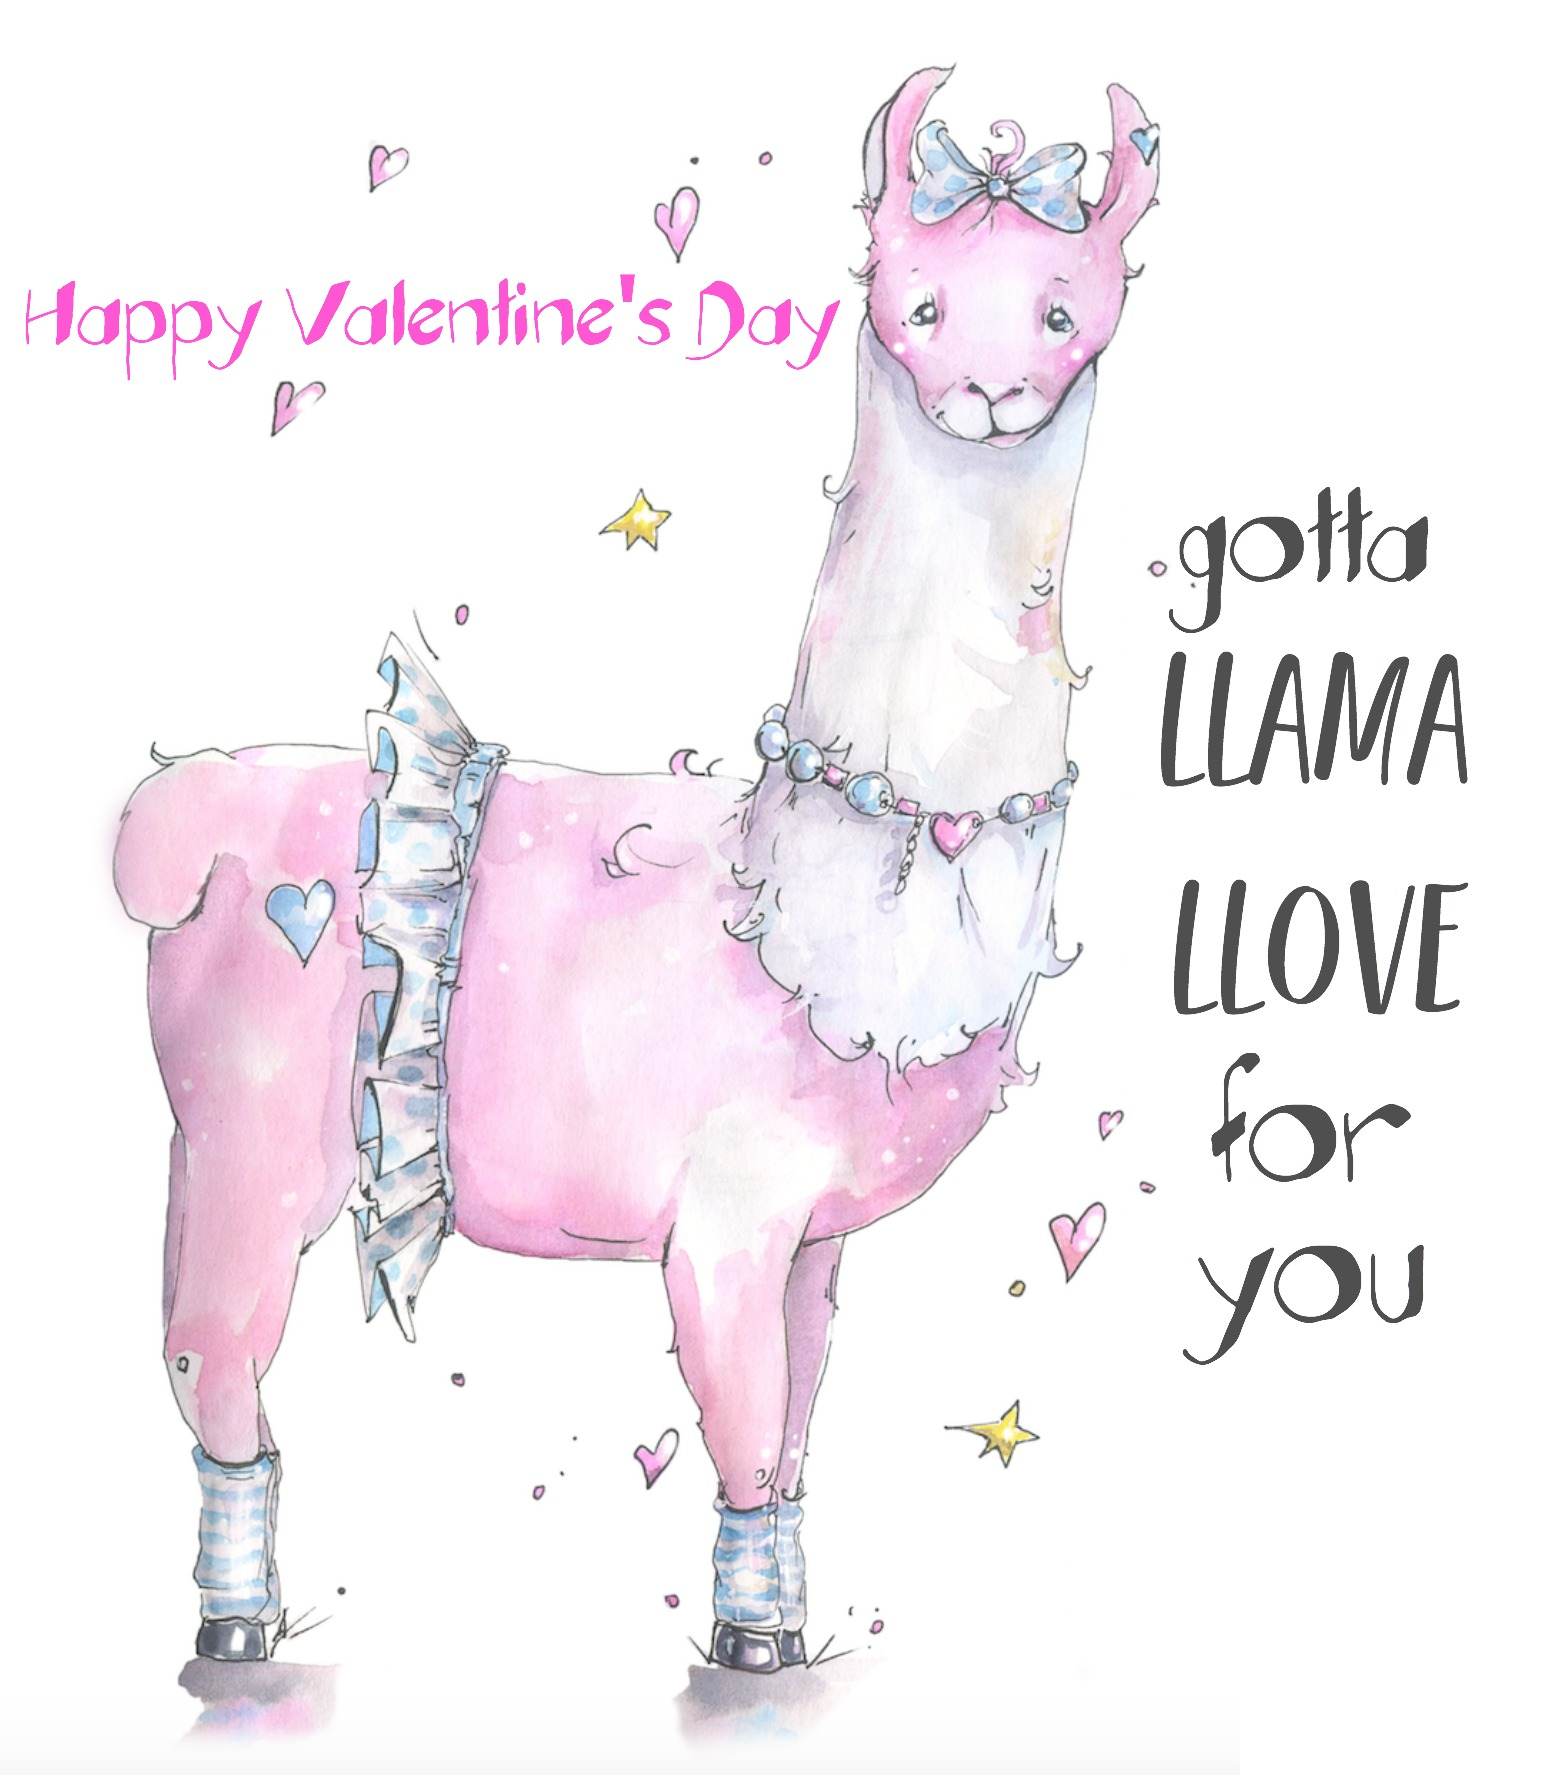 picture relating to Llama Printable called Llama Llove Valentine Card Printable